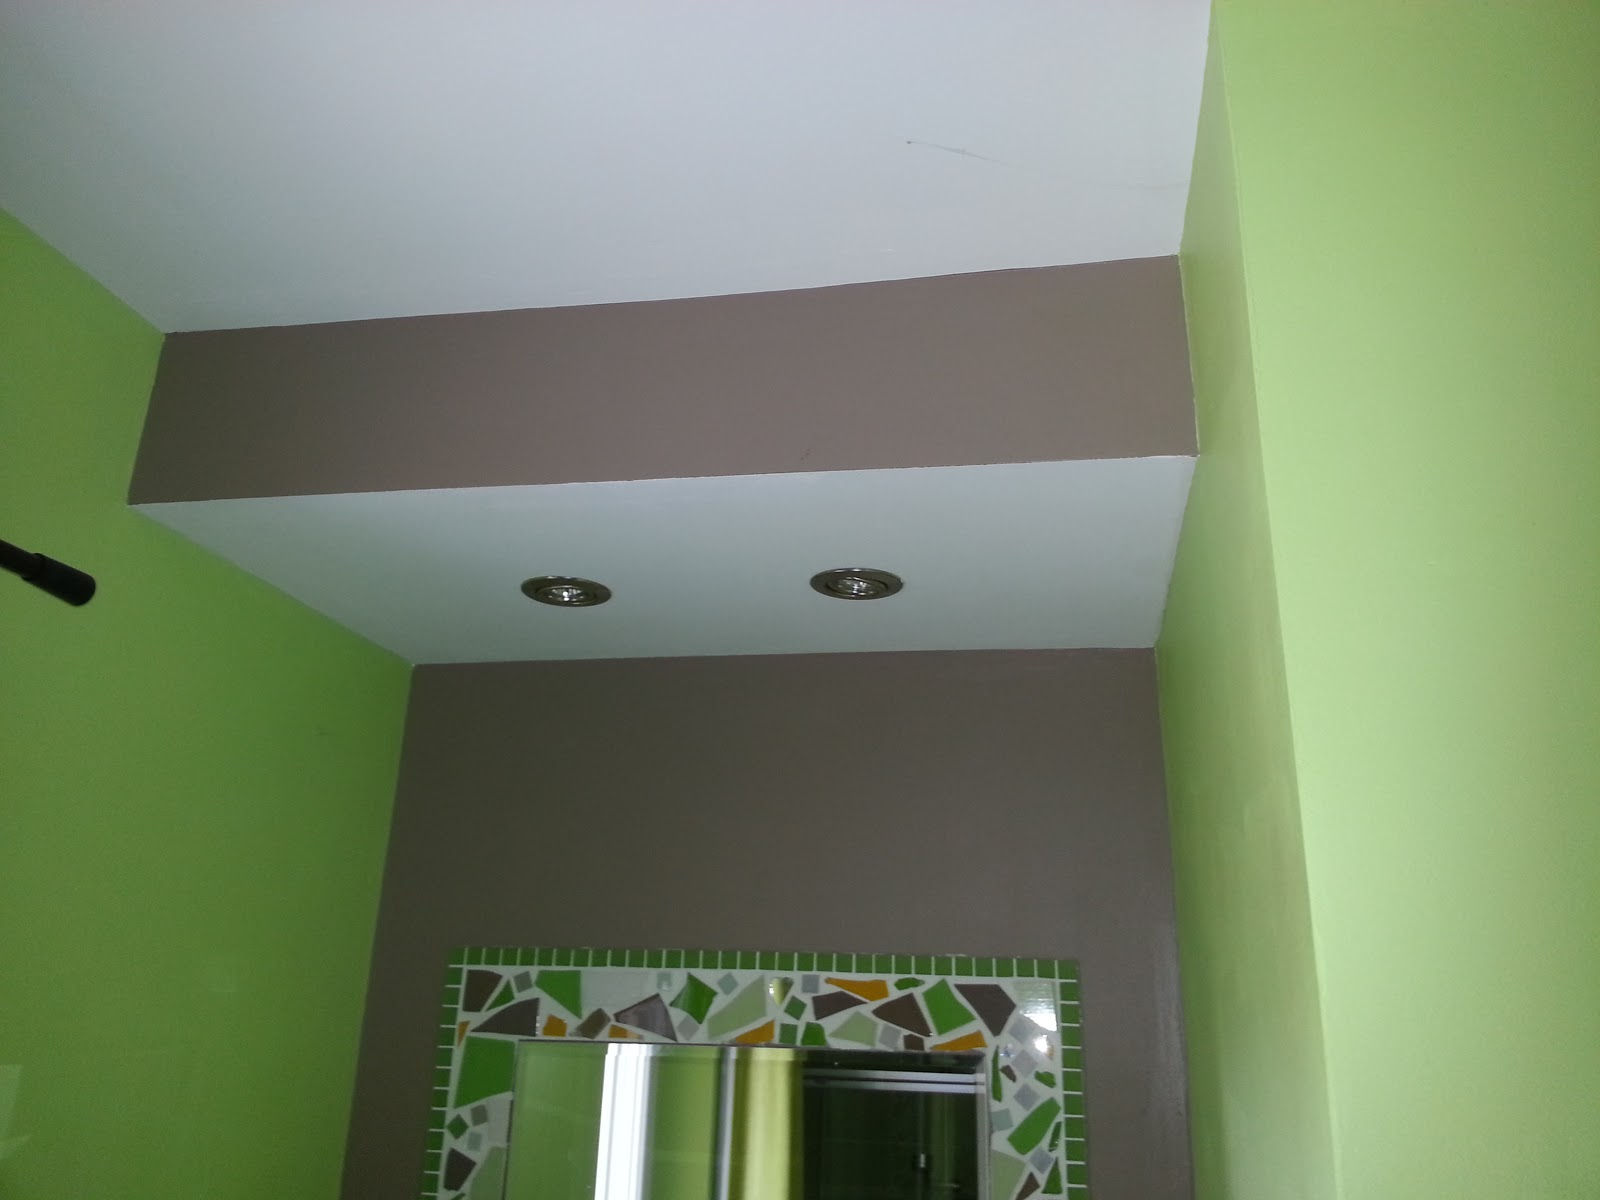 Cortade platrerie plafond for Realisation faux plafond decoratif